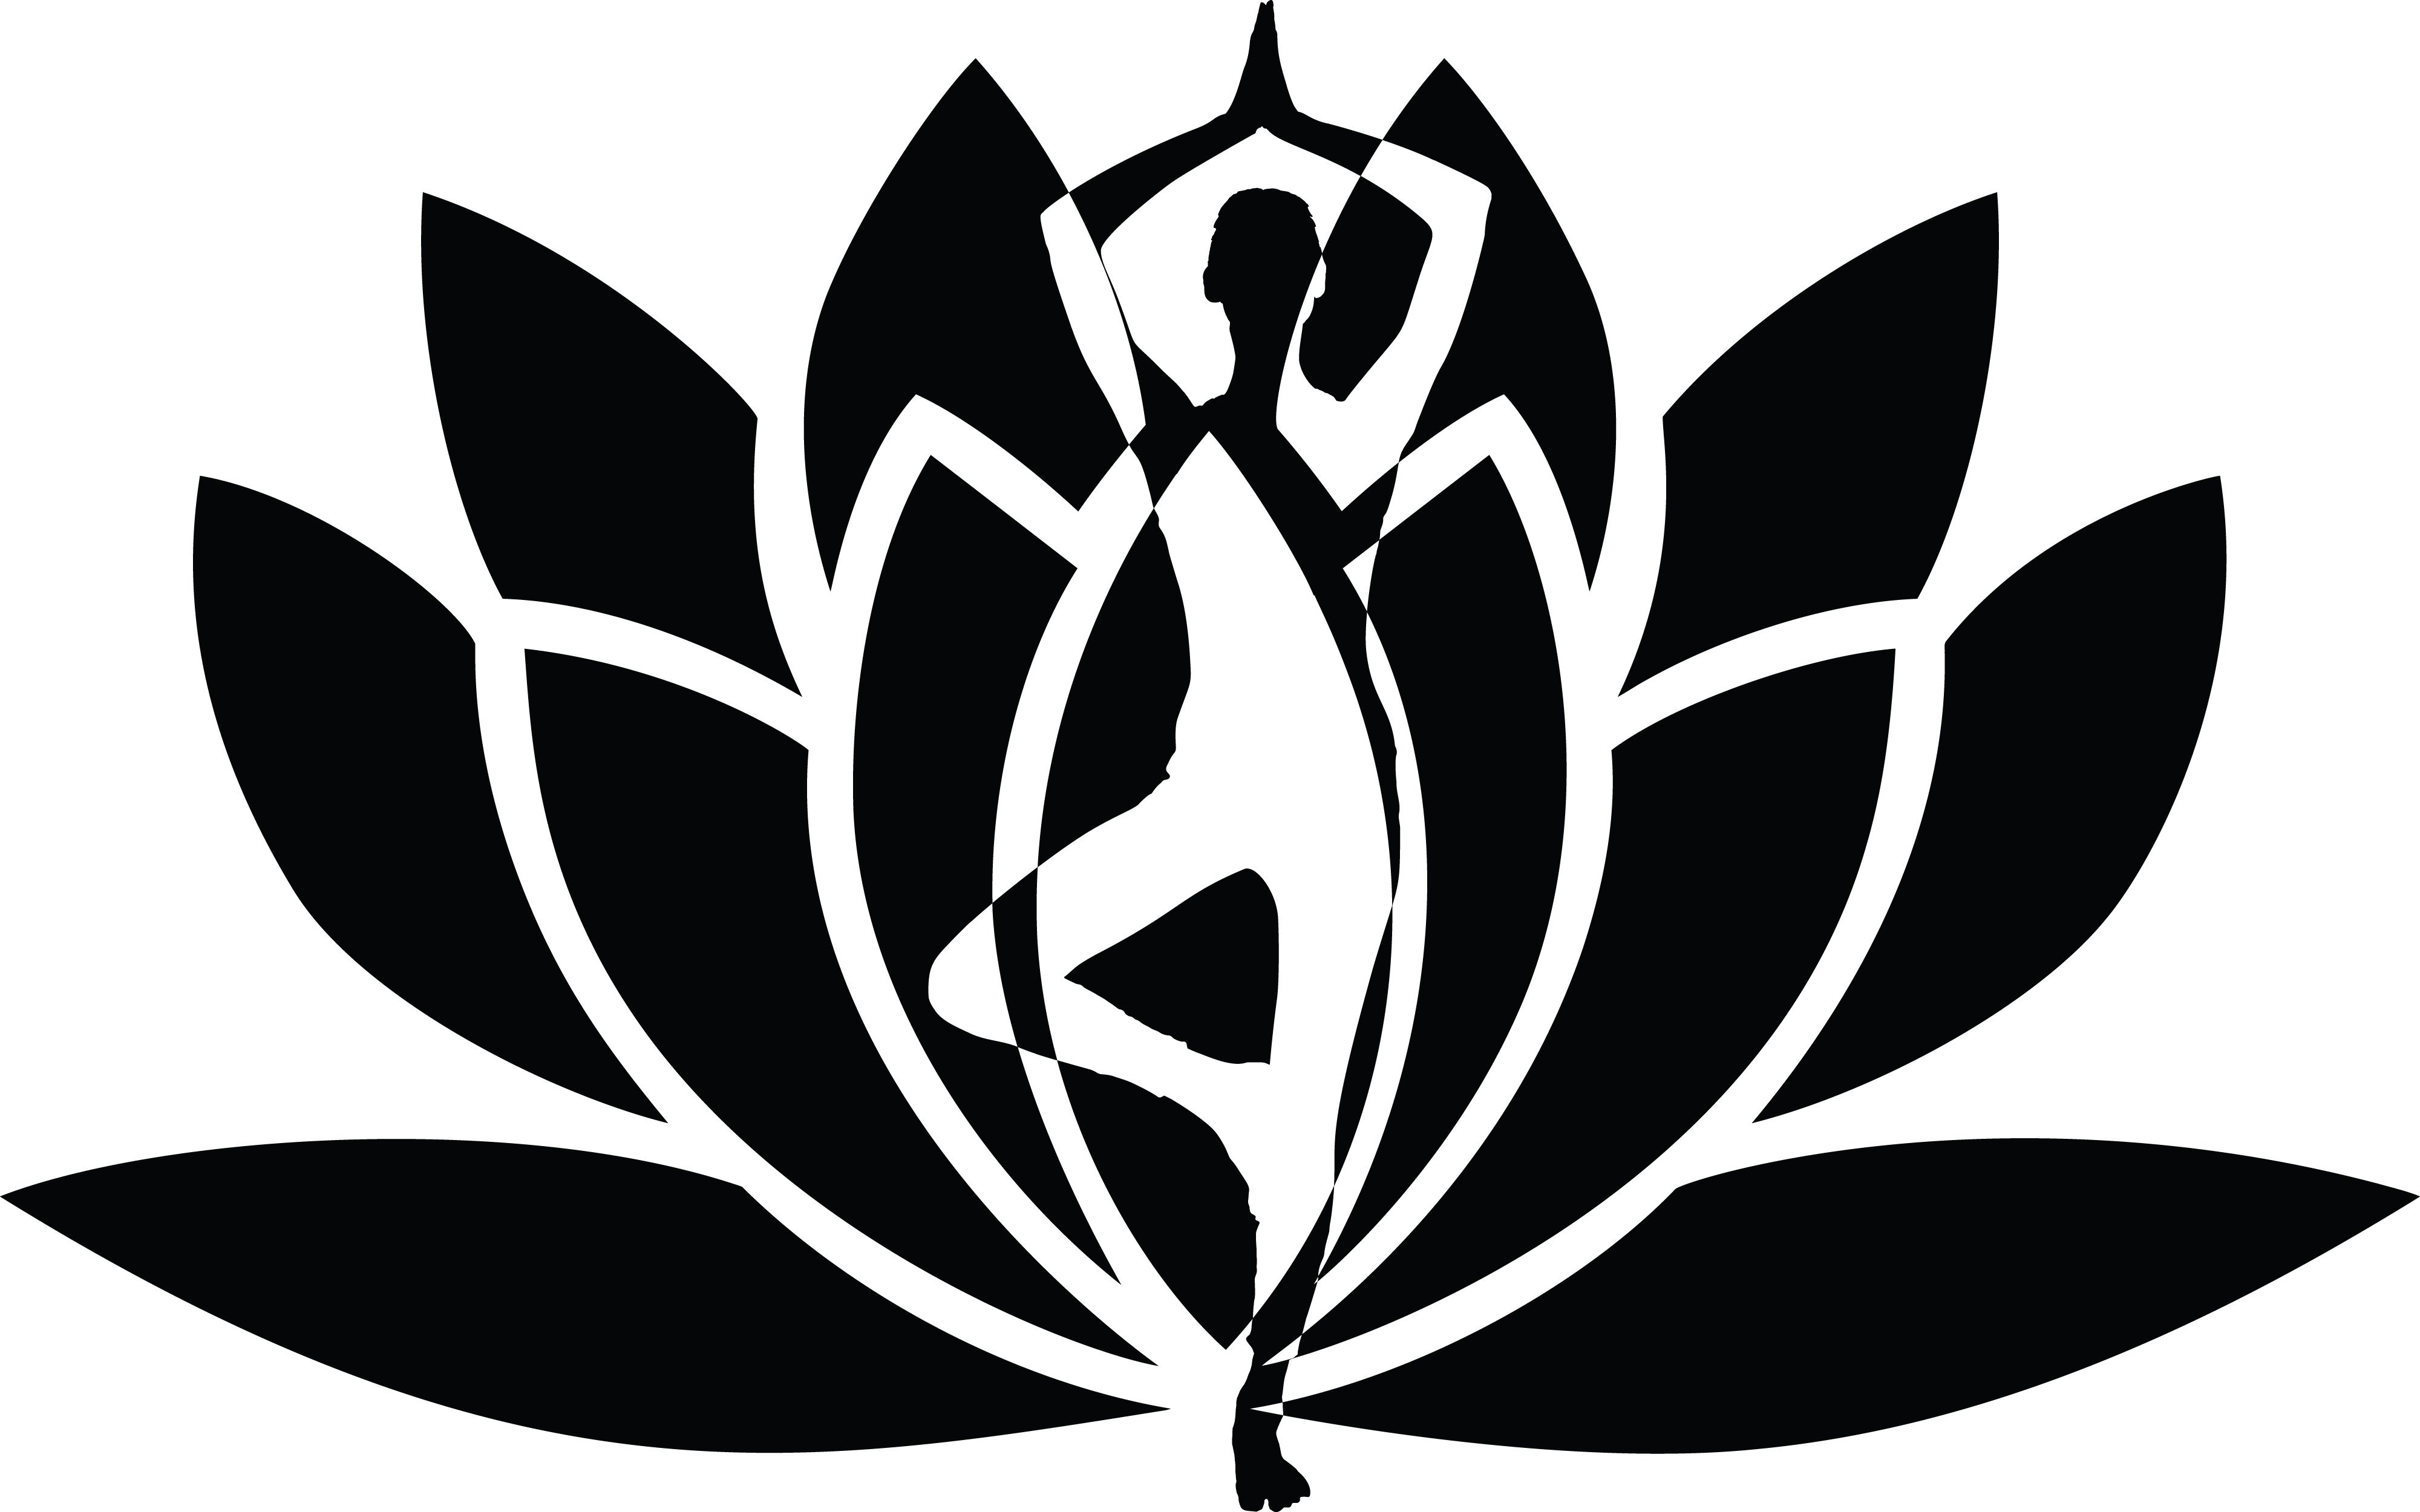 Yoga lotus flower clipart clip black and white download Free Clipart of a Silhouetted Woman Doing Yoga Over a Lotus ... clip black and white download